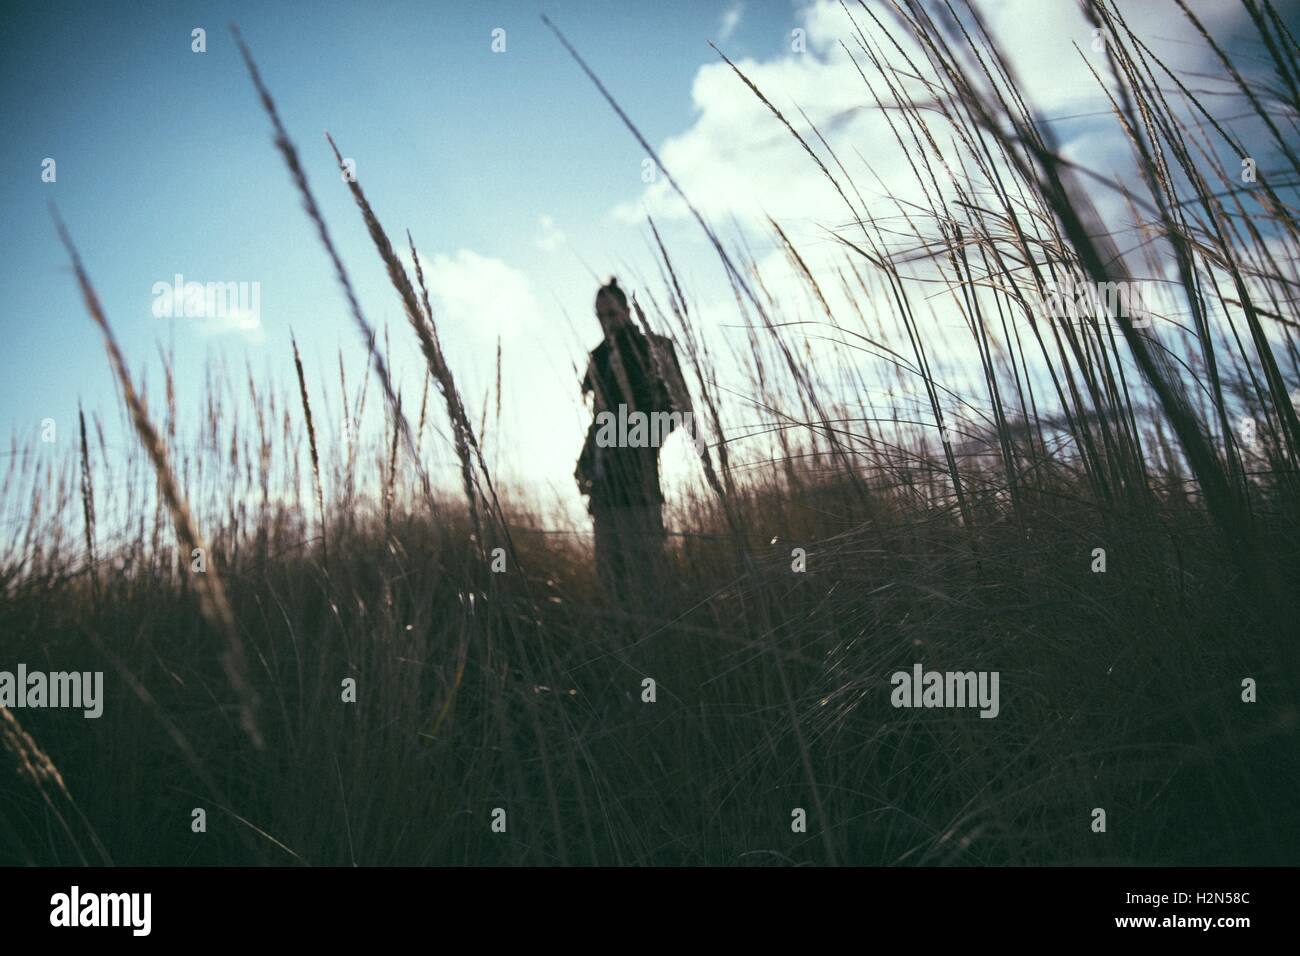 silhouette through tall grass - Stock Image